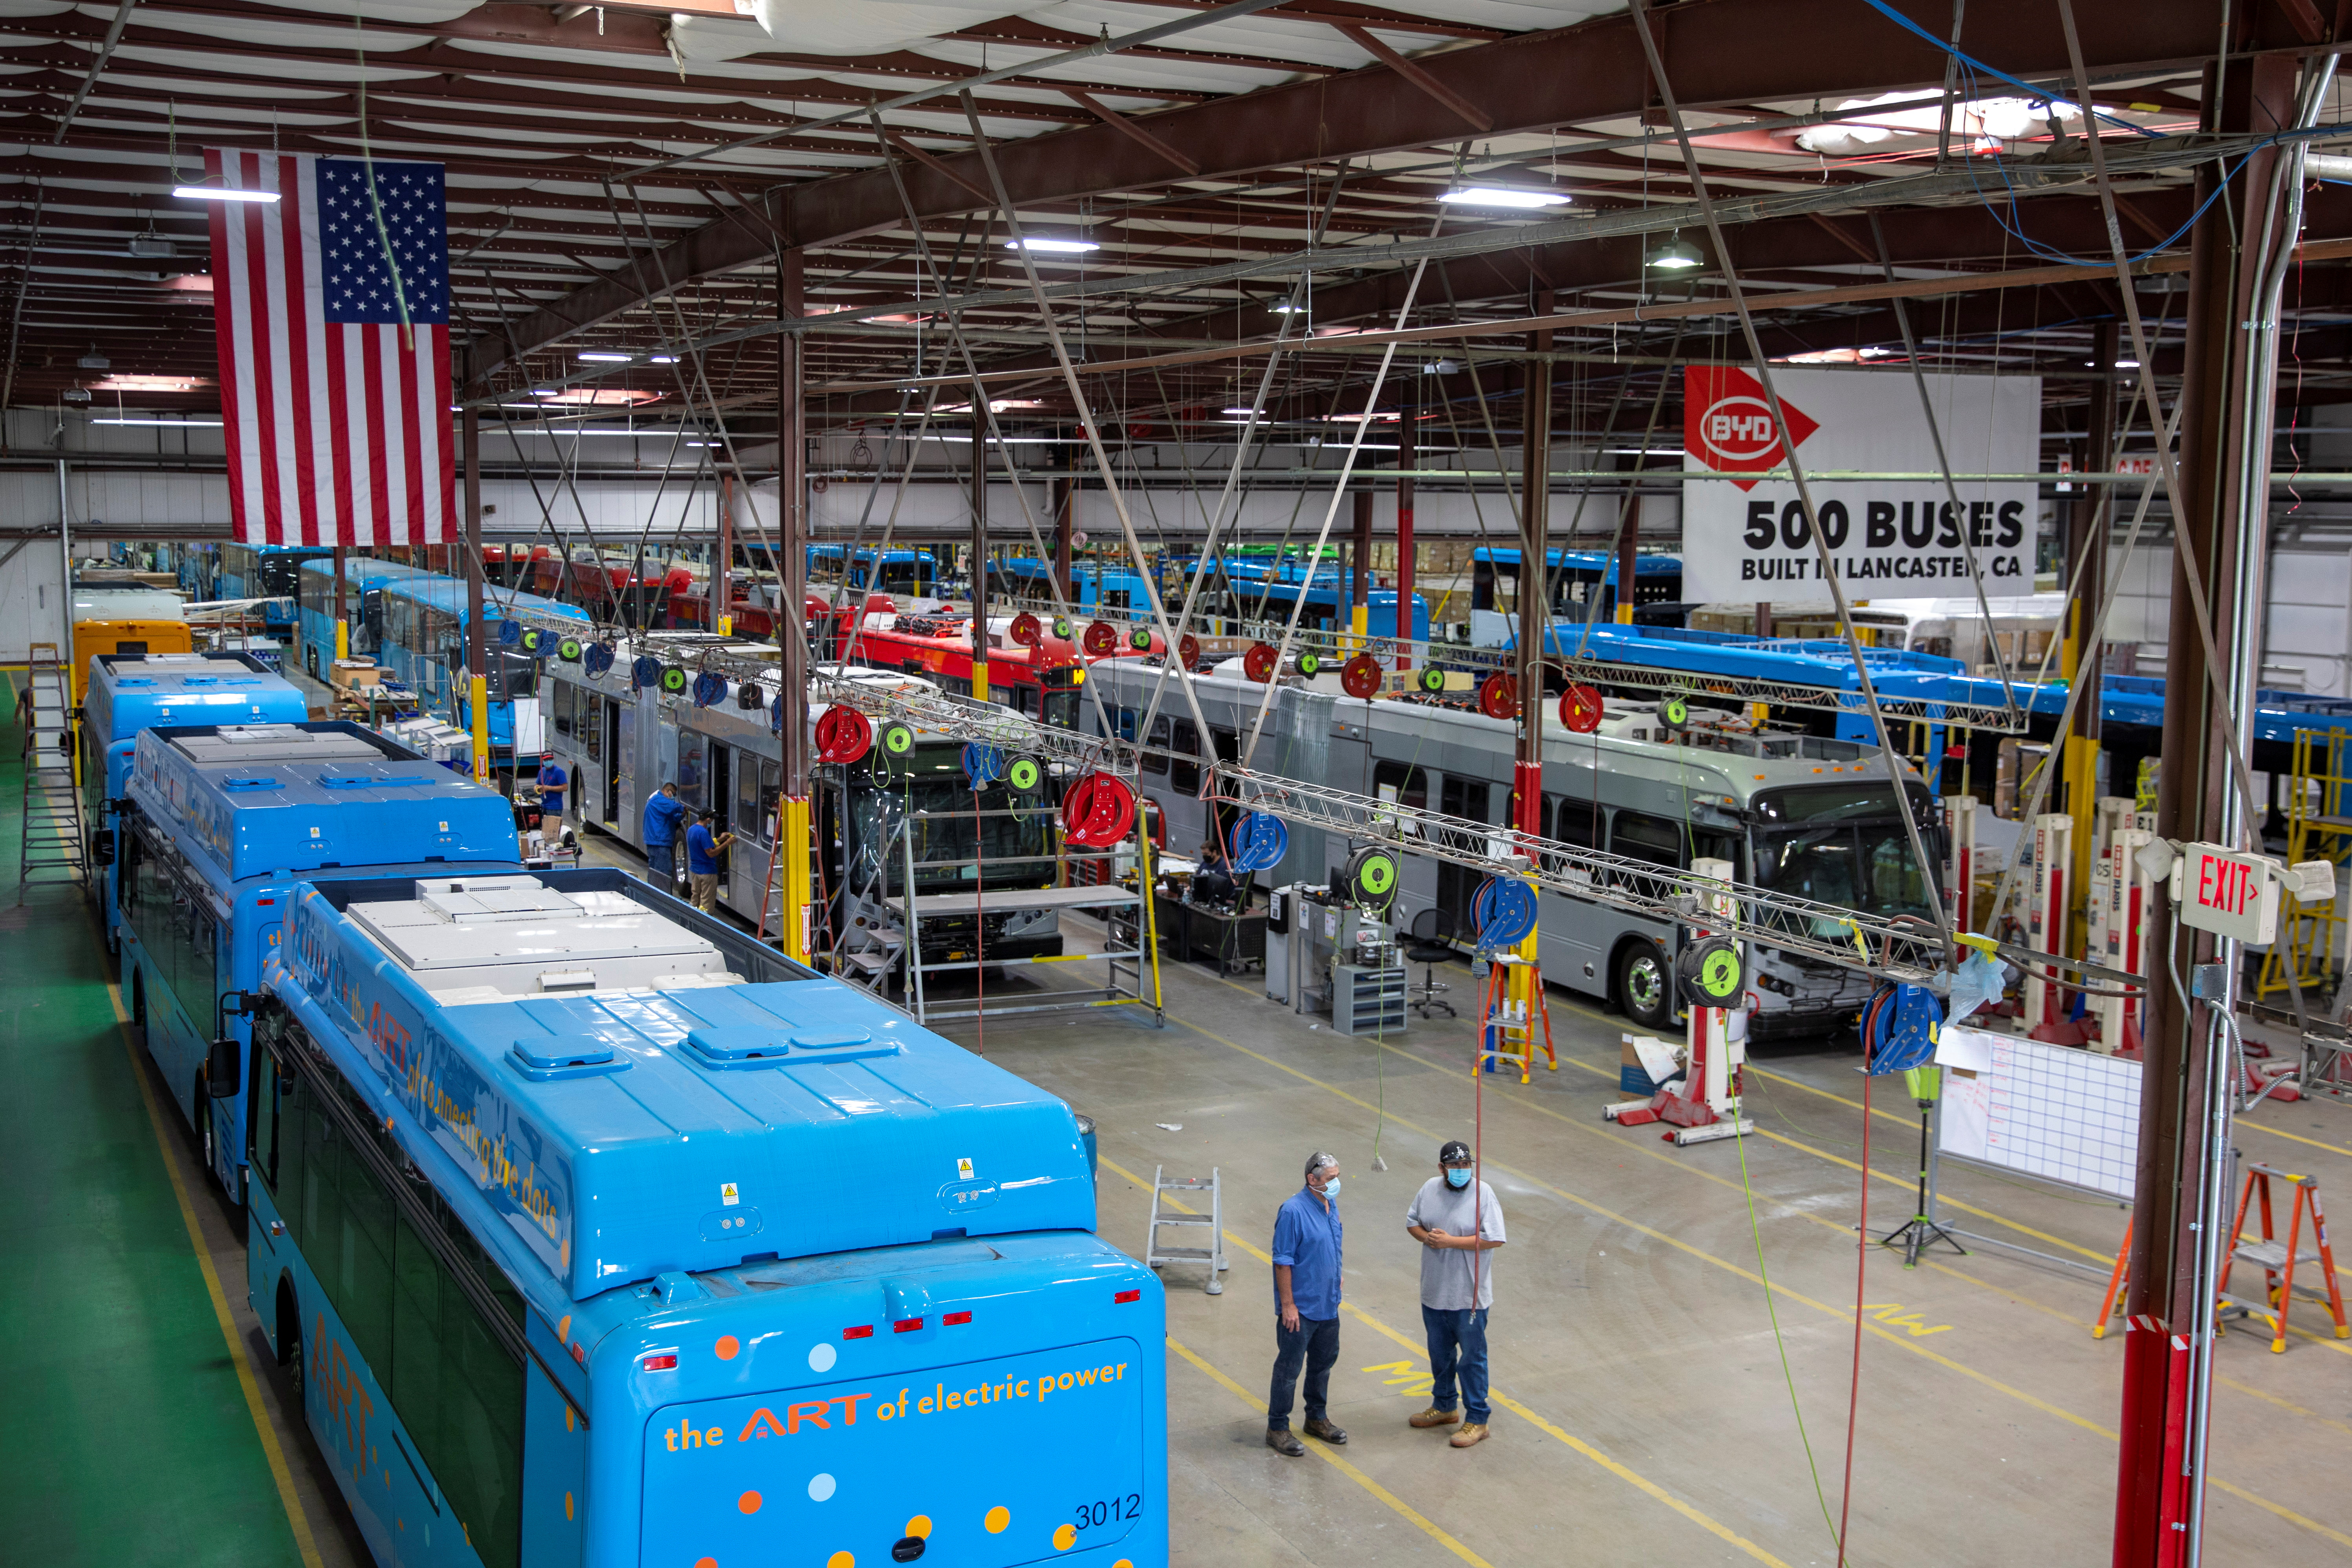 Buses are shown being built at the BYD electric bus factory in Lancaster, California, U.S., July 1, 2021. REUTERS/Mike Blake